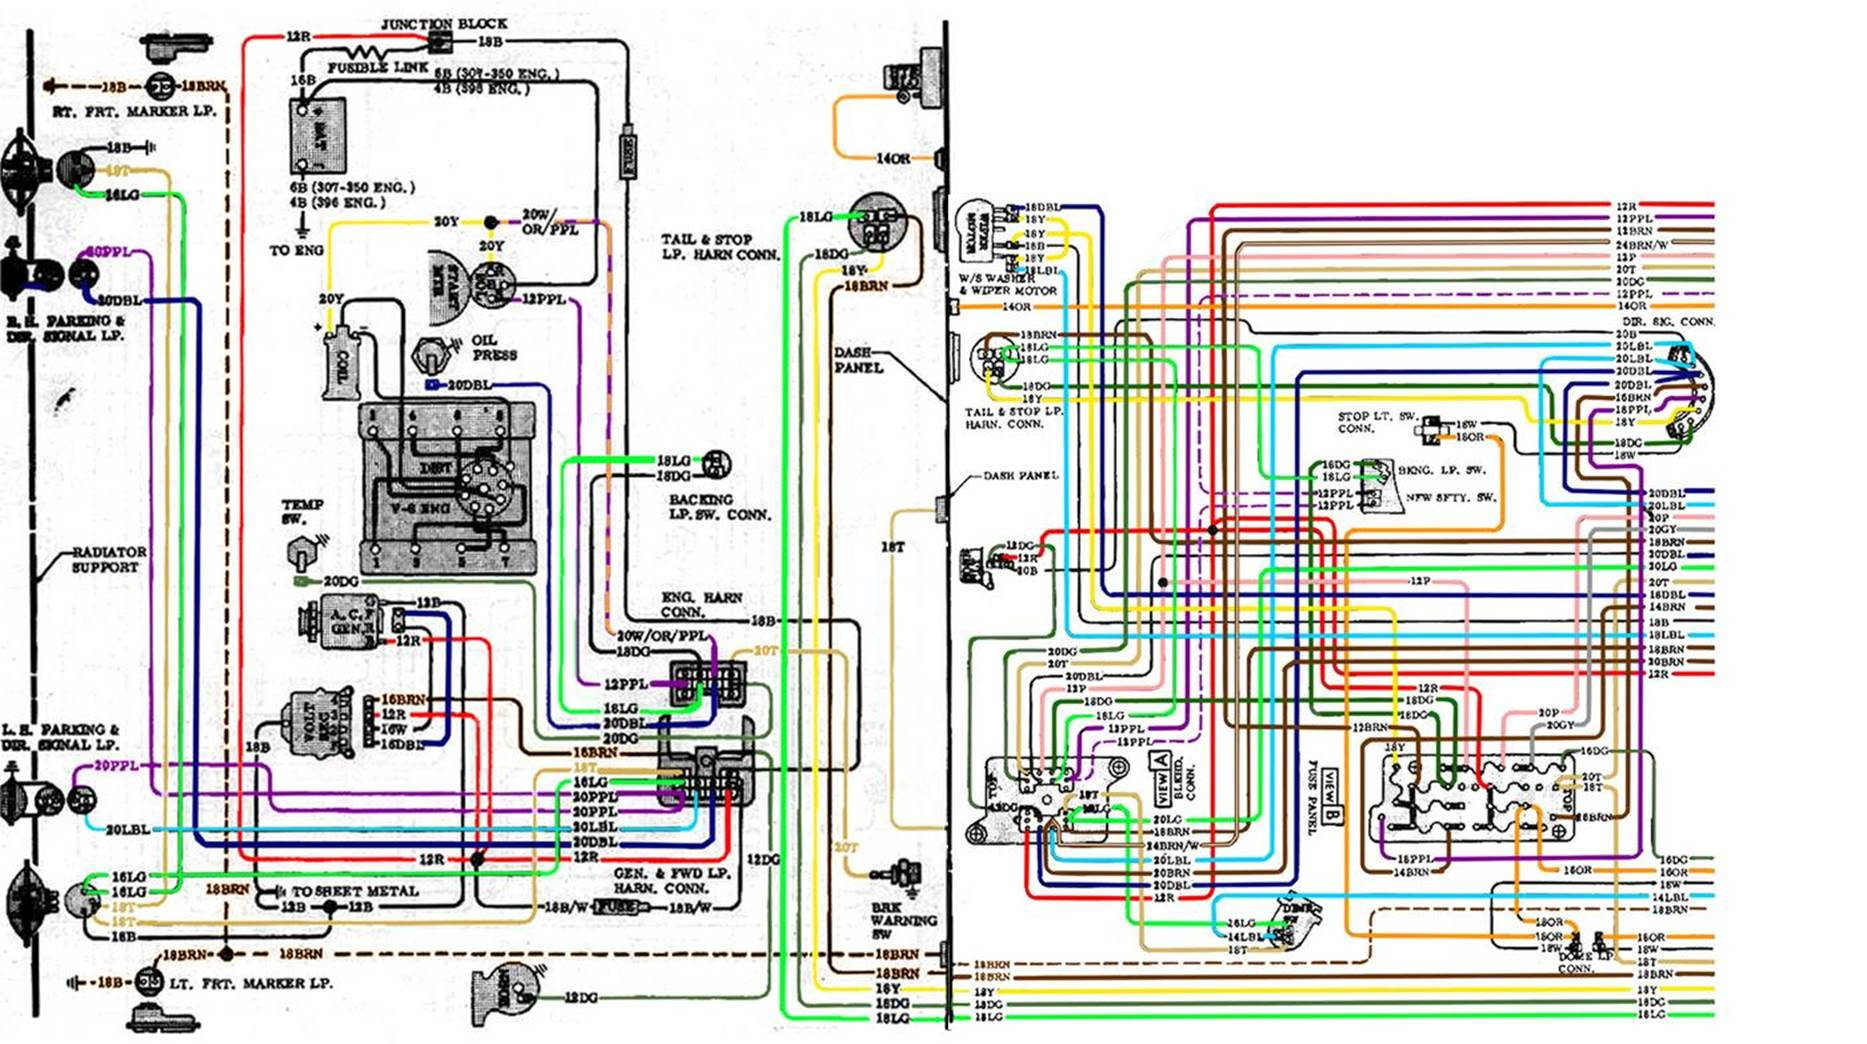 image002 72 c10 wiring diagram chevy truck wiring diagram \u2022 wiring diagrams gm wiring harness diagram at eliteediting.co